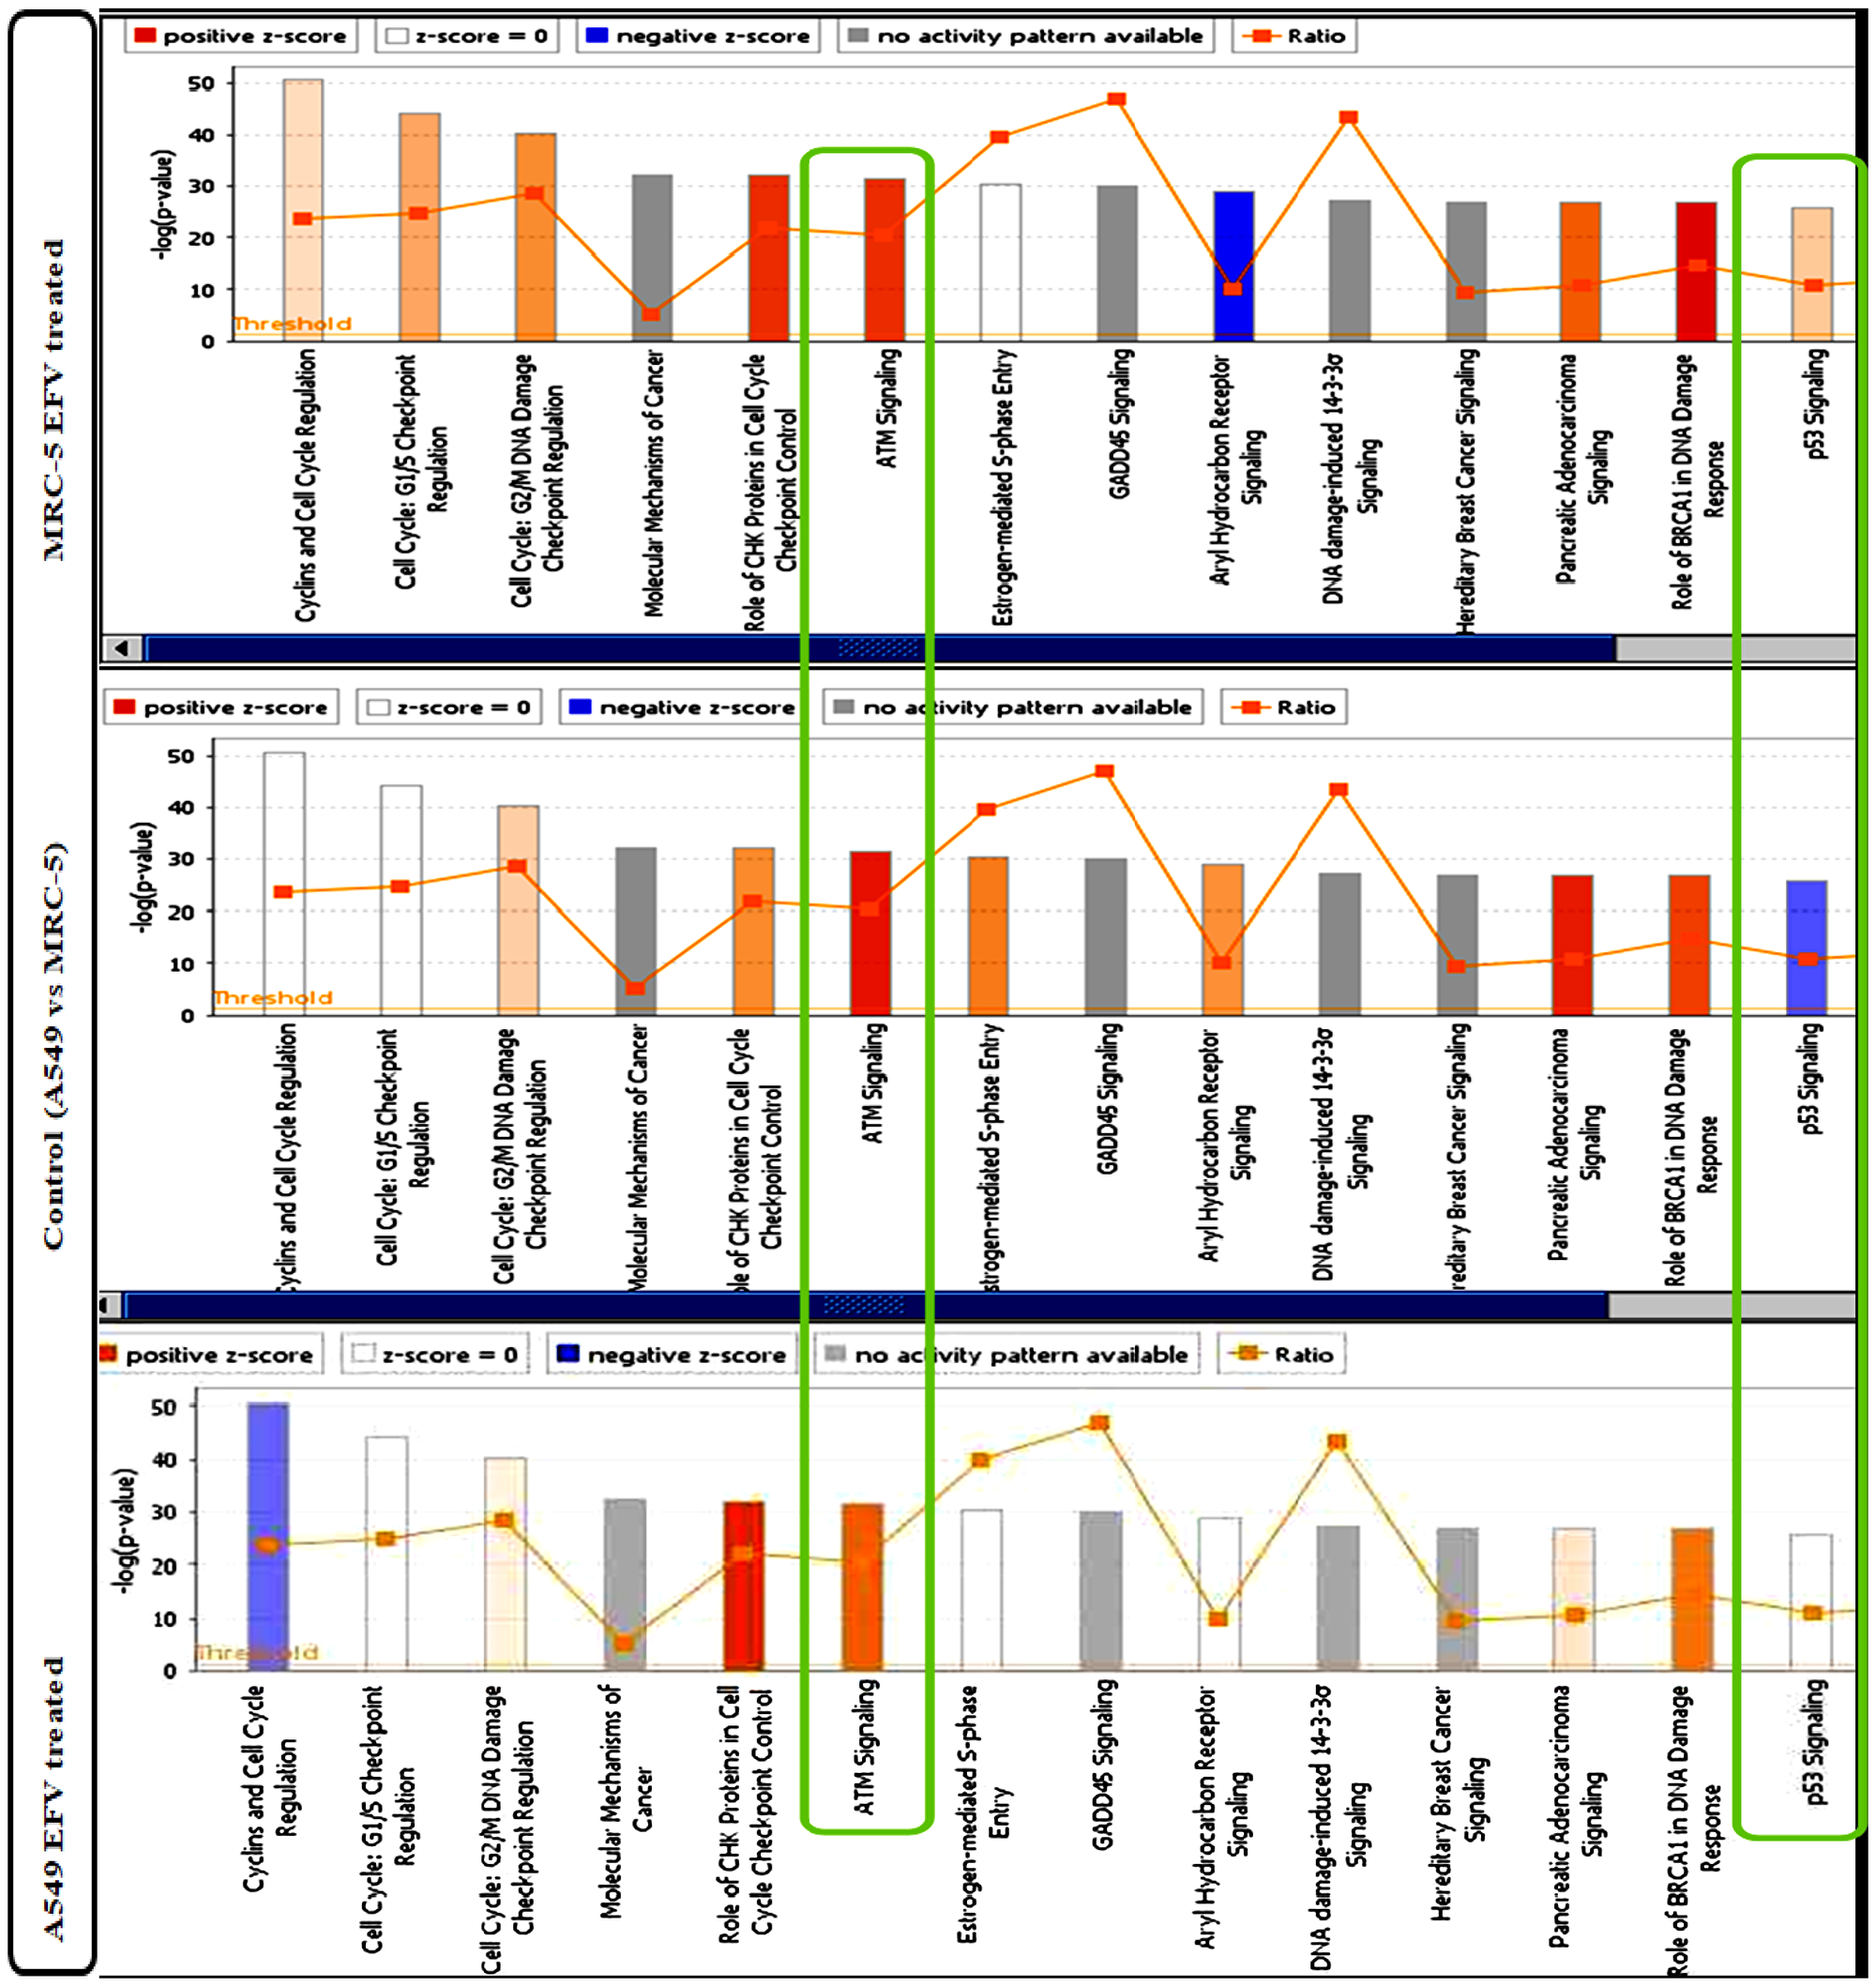 IPA Canonical Pathway analysis of differentially expressed genes in EFV treated vs control cells.